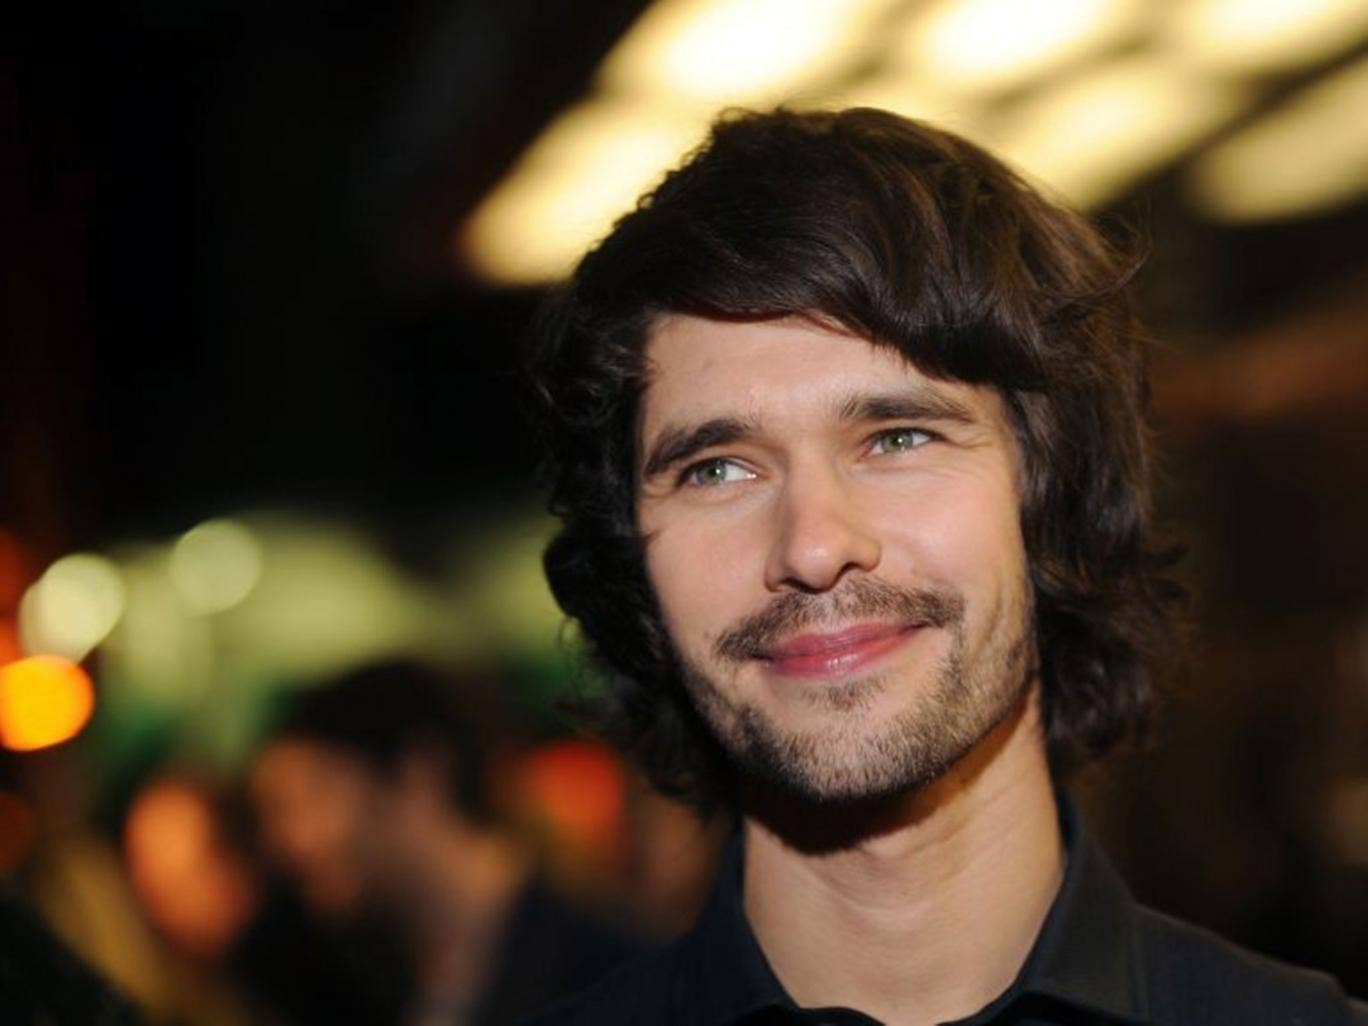 Admission: Ben Whishaw has confirmed that he is married to his partner